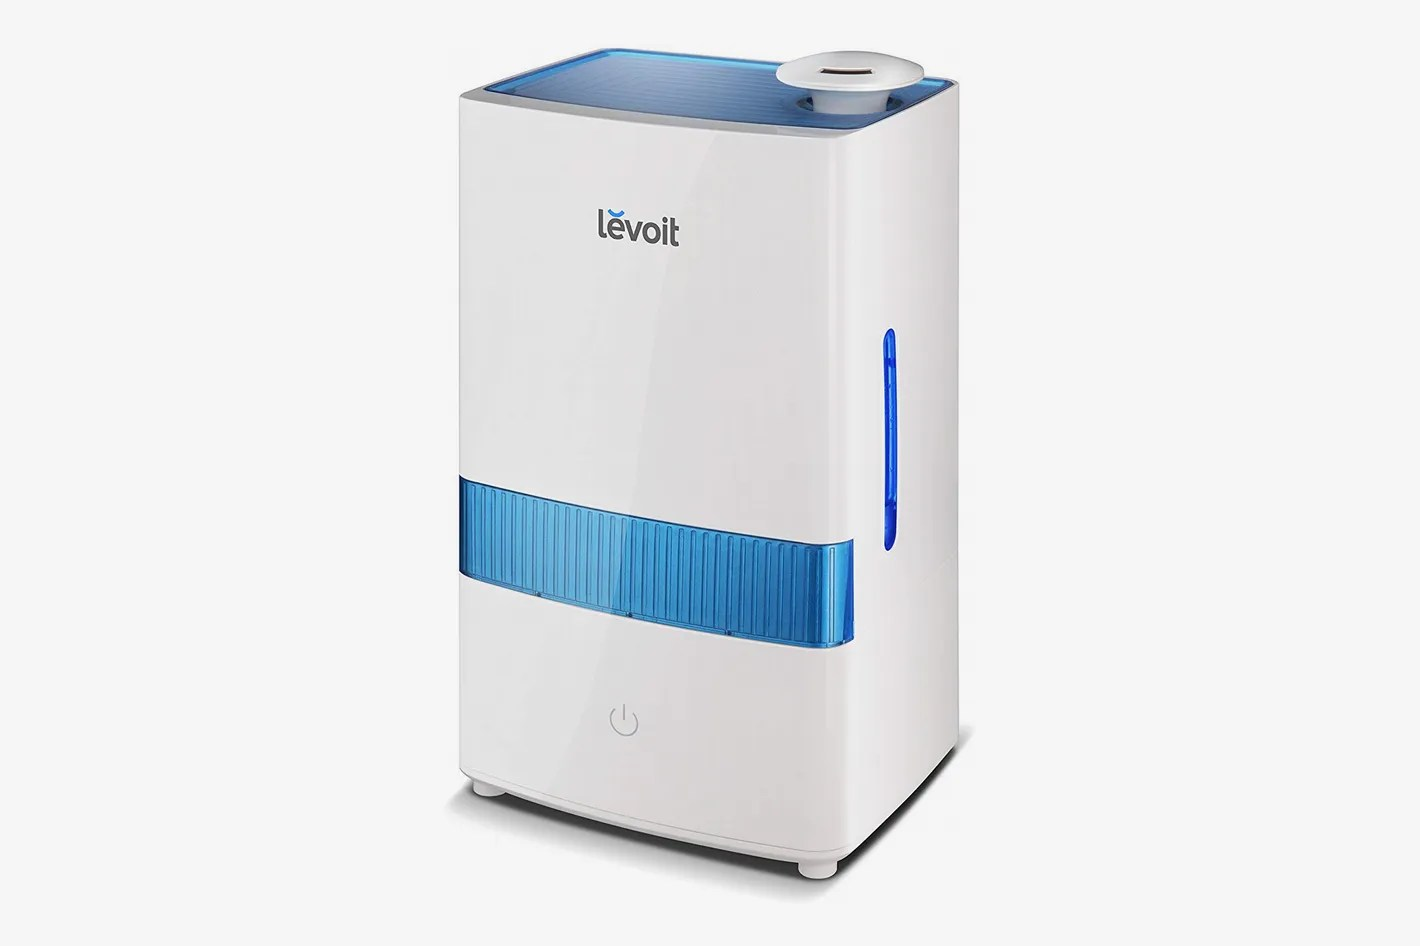 hight resolution of levoit lv450ch humidifier